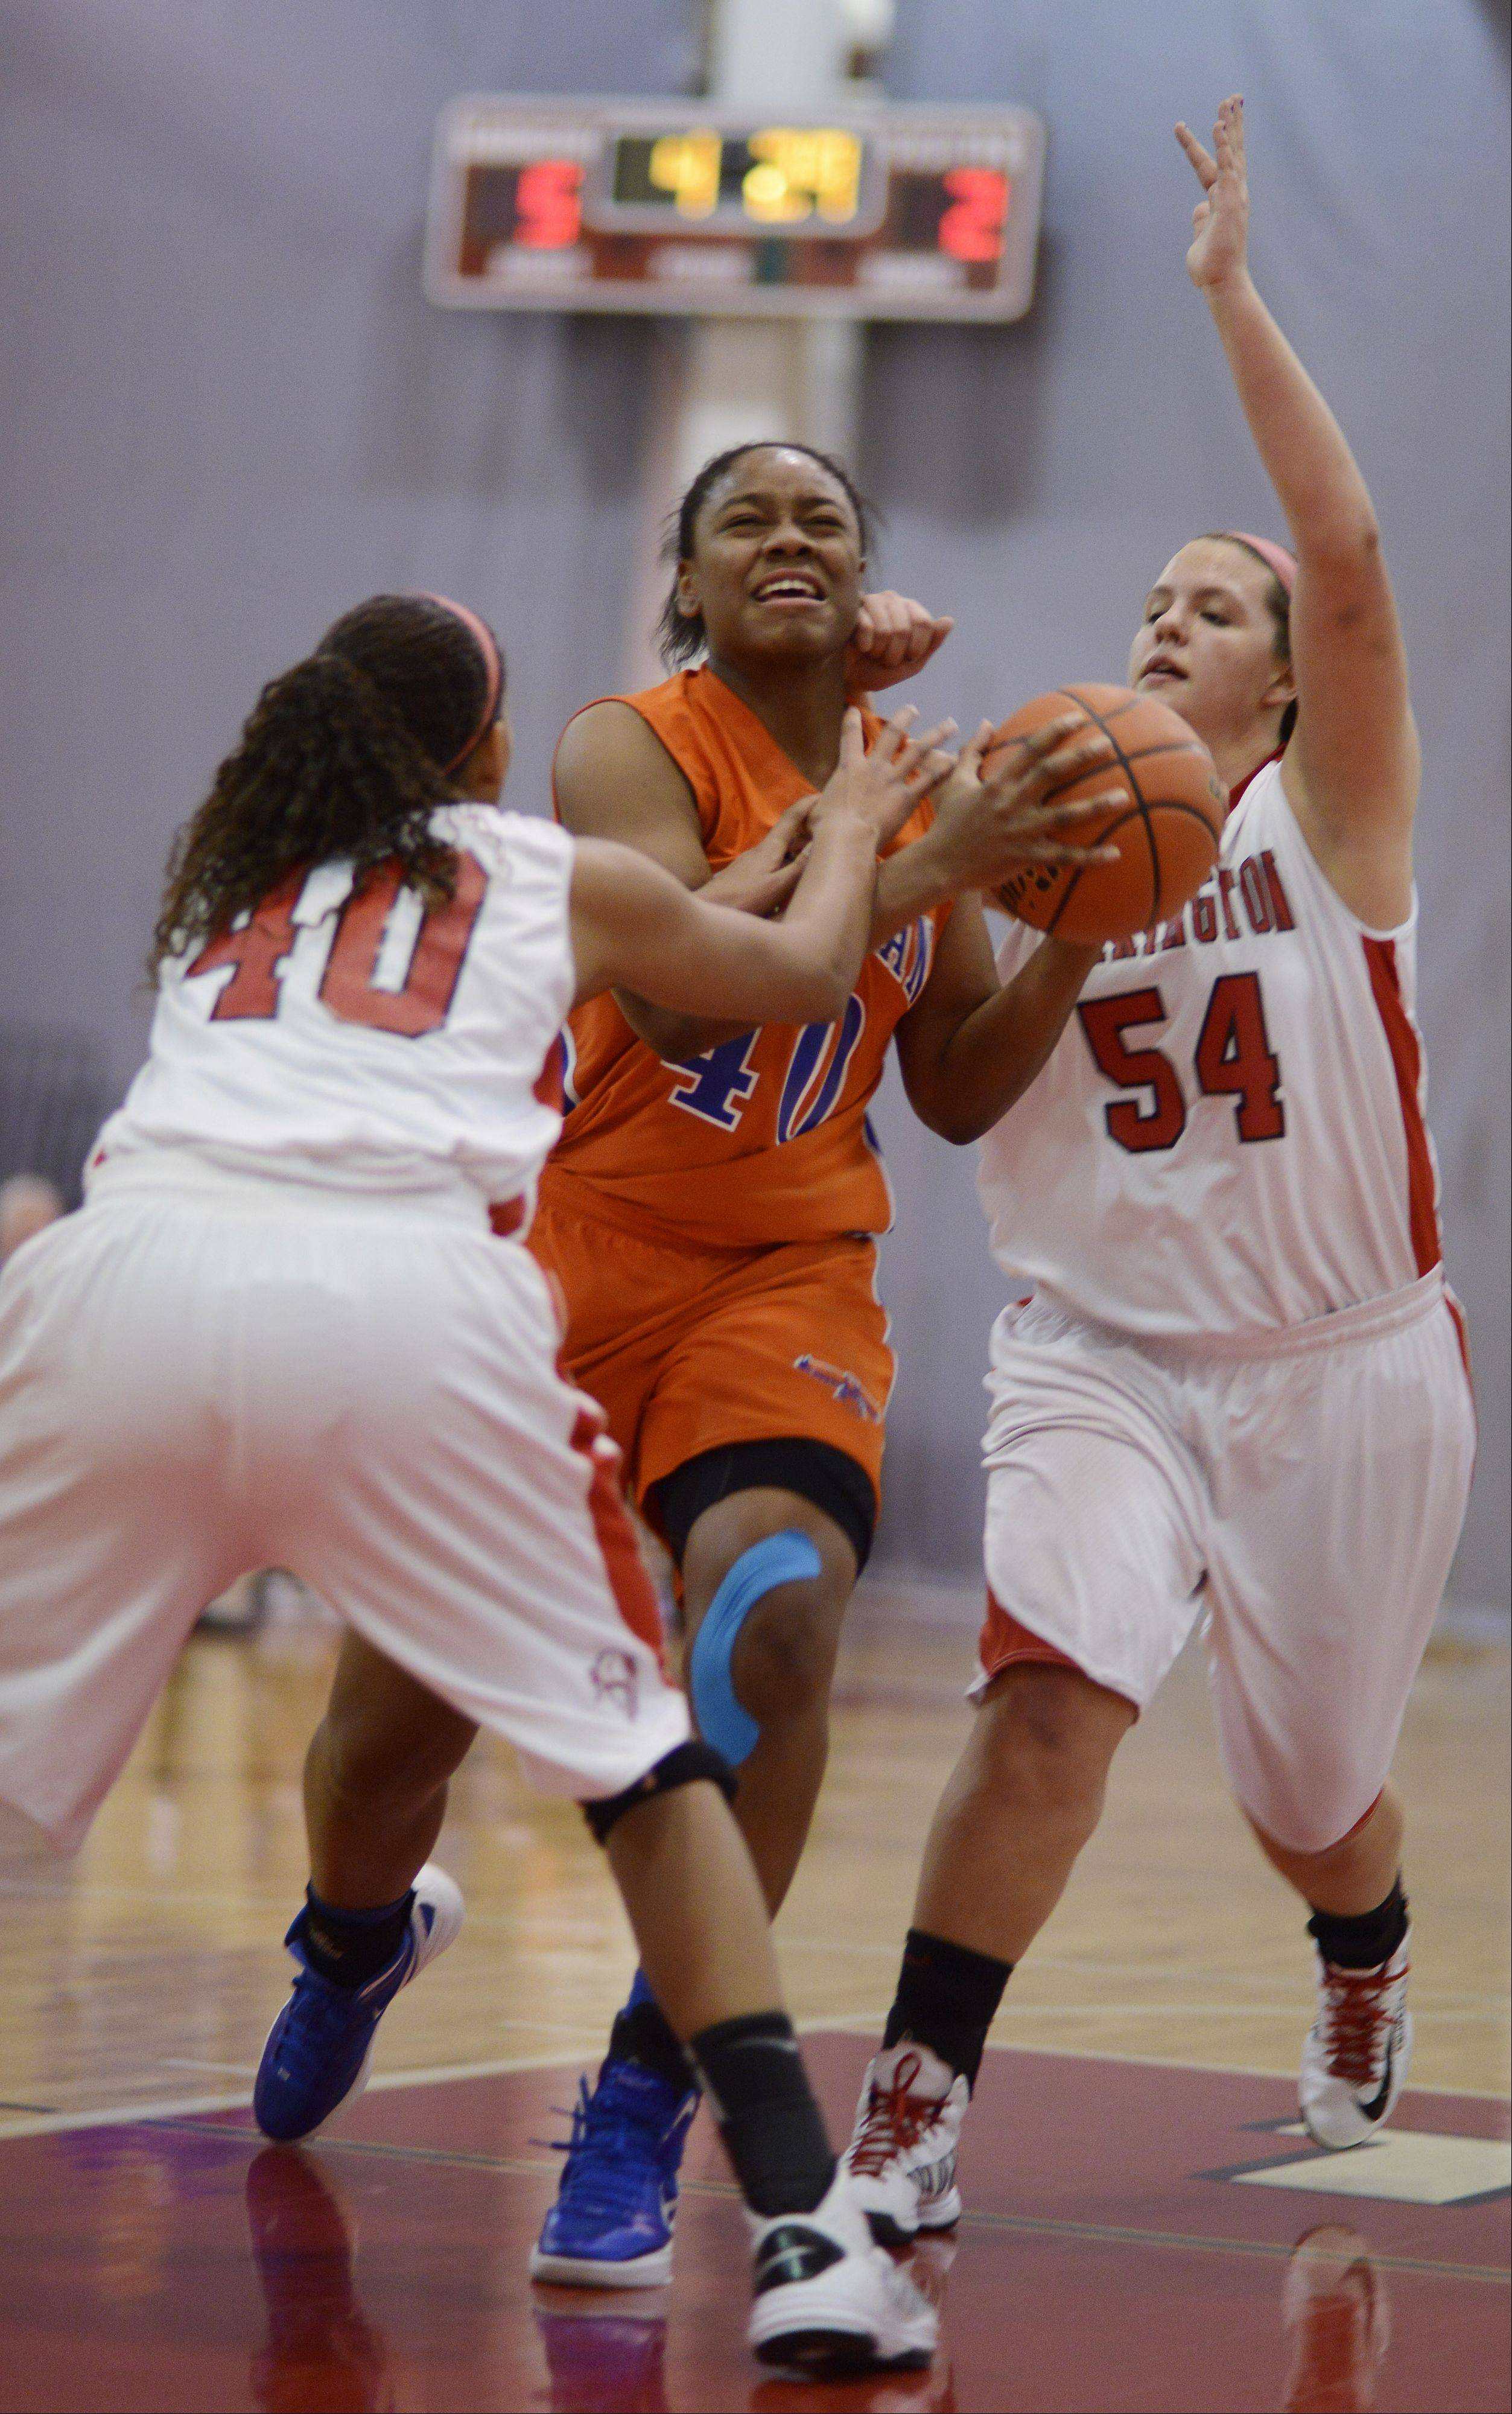 Hoffman Estates� Destinee Young, middle, draws contact as she drives to the basket against Barrington�s Bryana Hopkins, left, and Alexa Resch during Wednesday�s game.